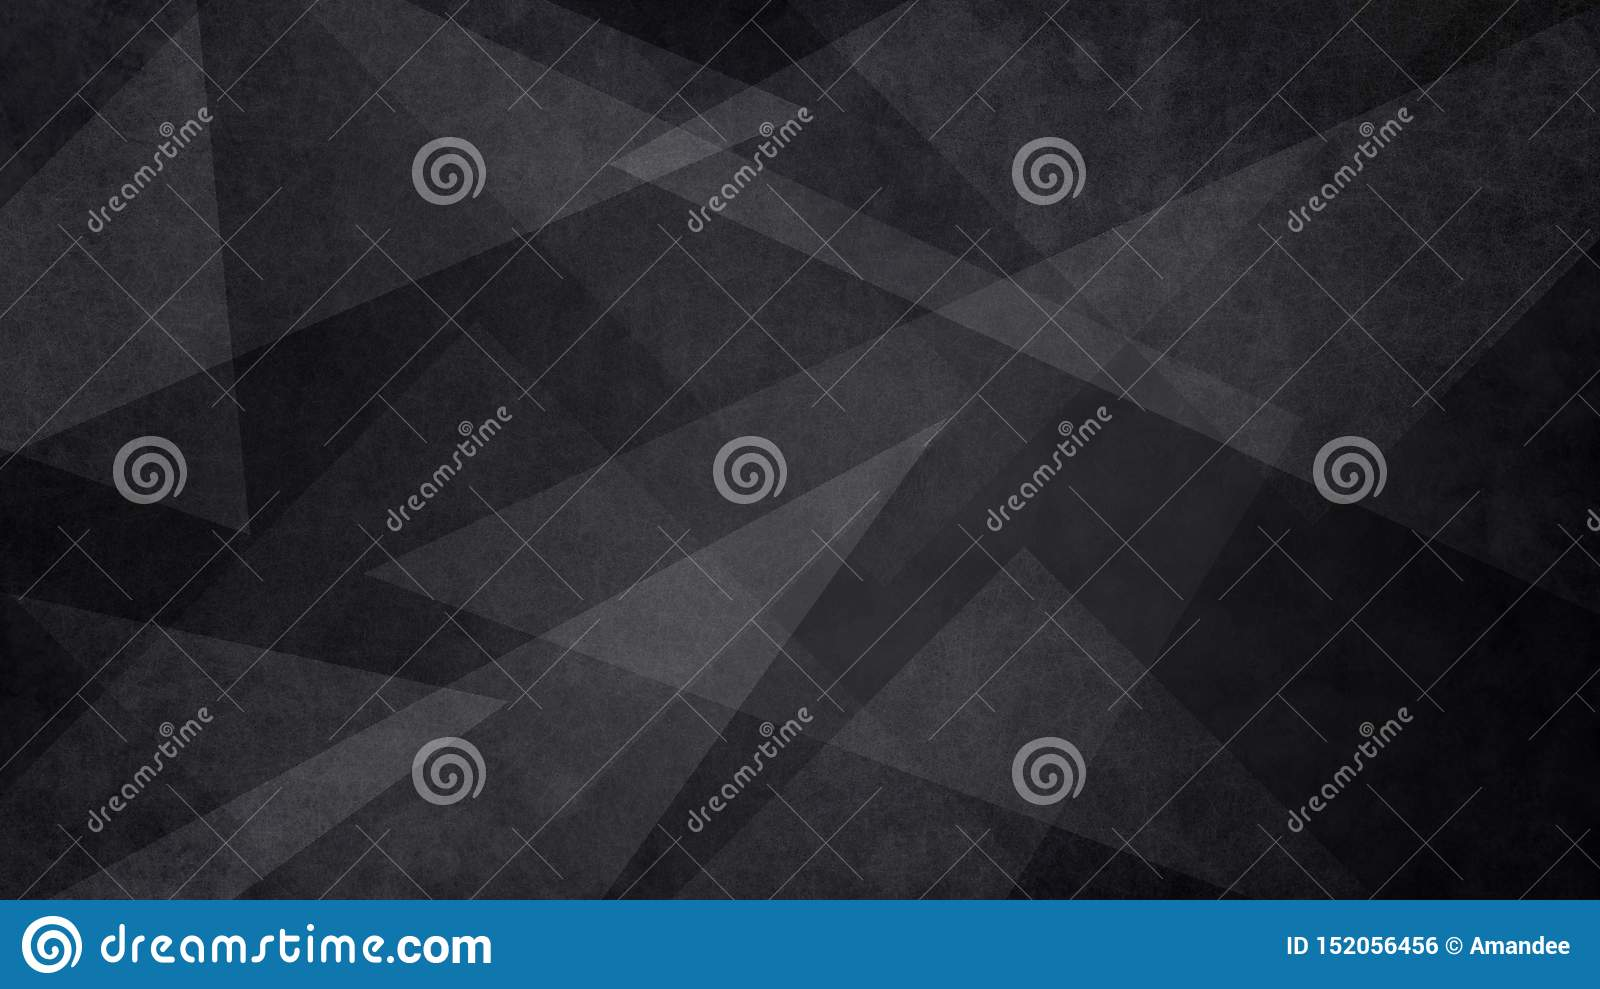 Abstract black and white background with random geometric triangle pattern. Elegant dark gray color with textured light shapes